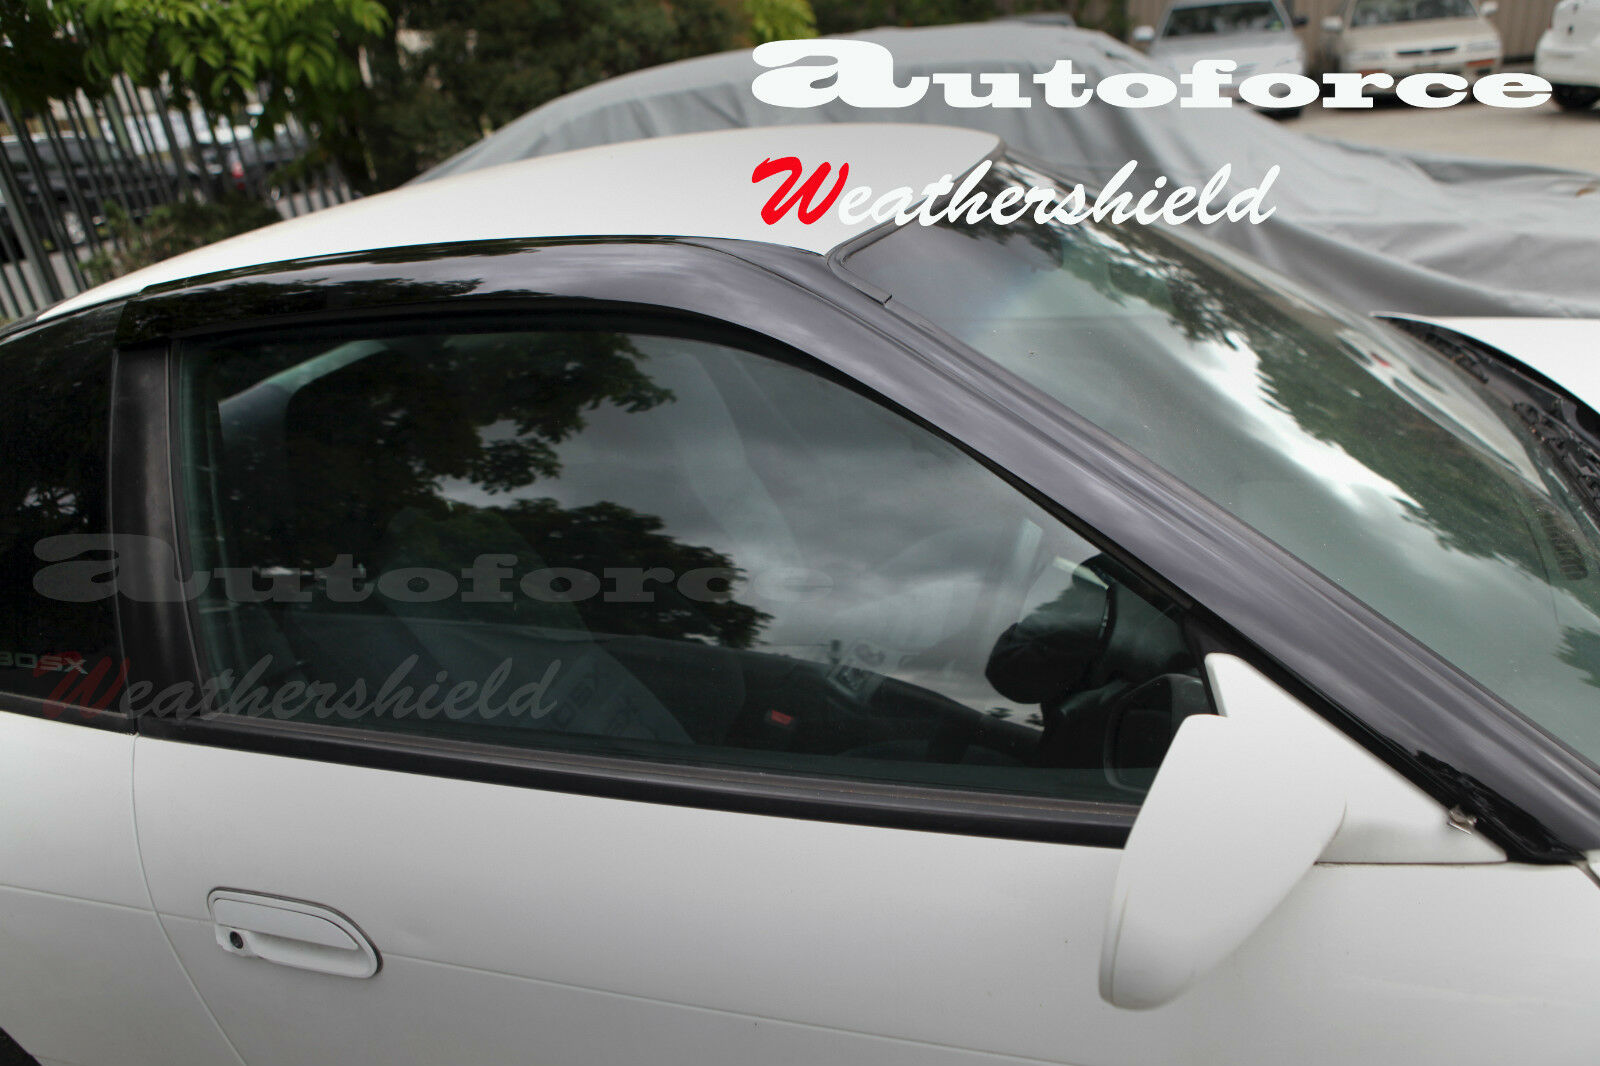 nissan 180sx ca18 sr20 weather shield weathershield window